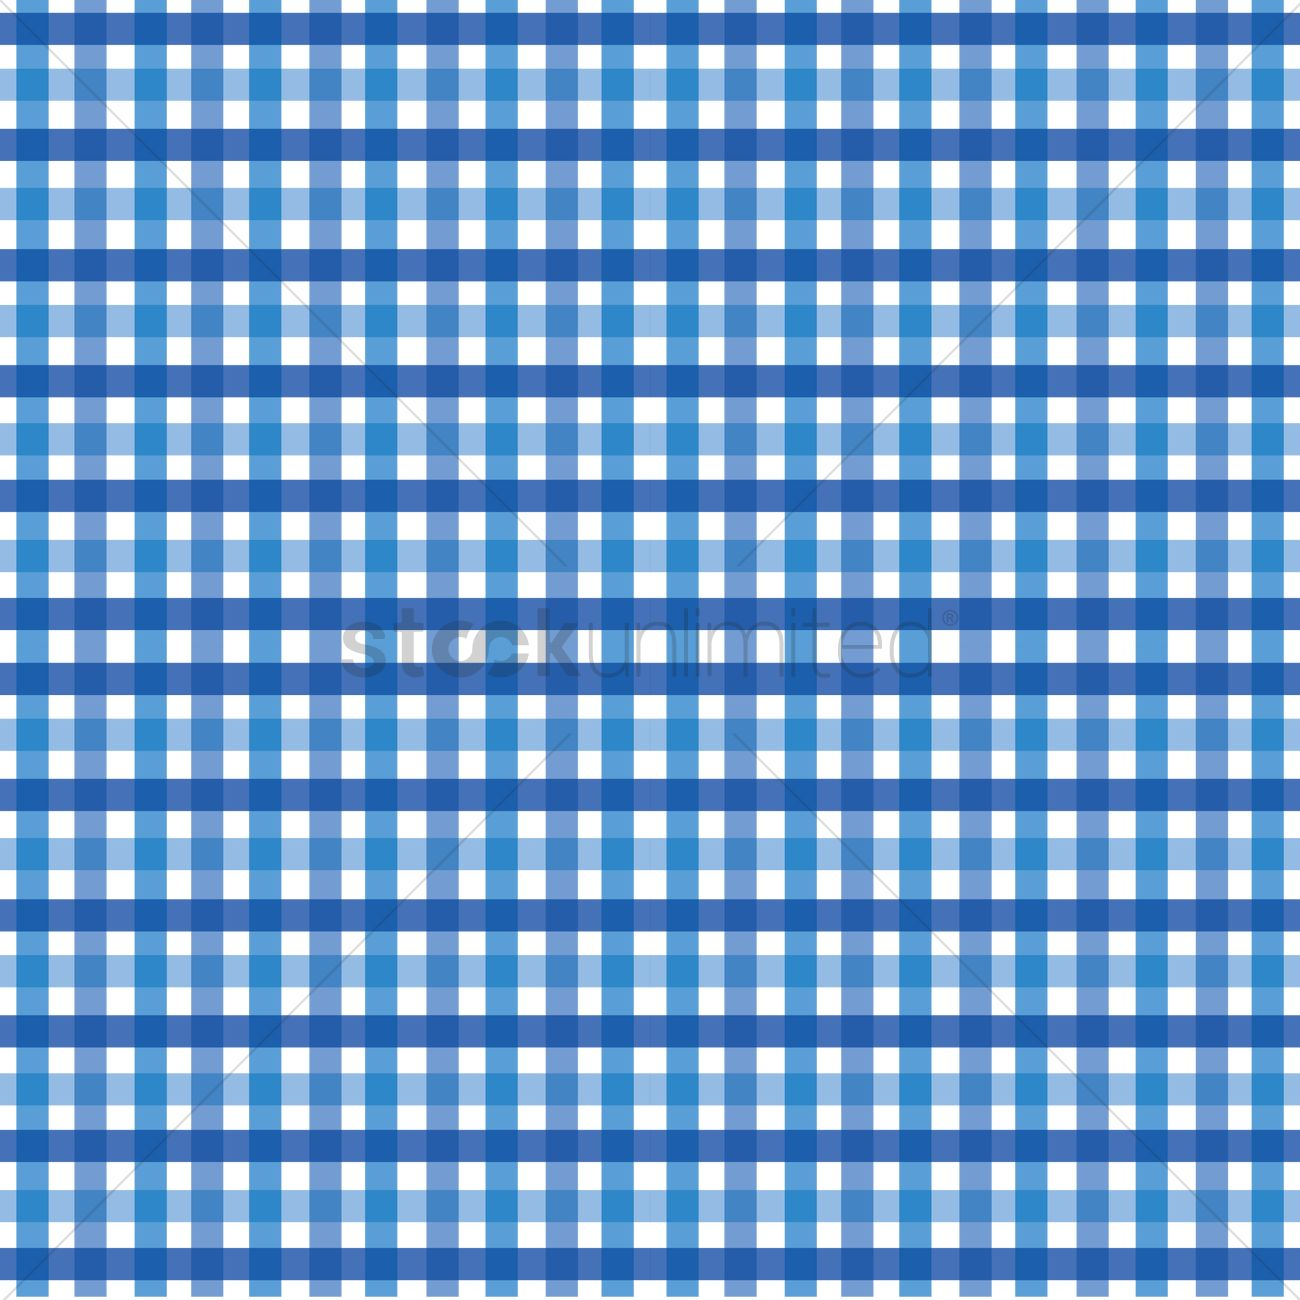 Checkered Design Checkered Fabric Pattern Vector Image 1464096 Stockunlimited